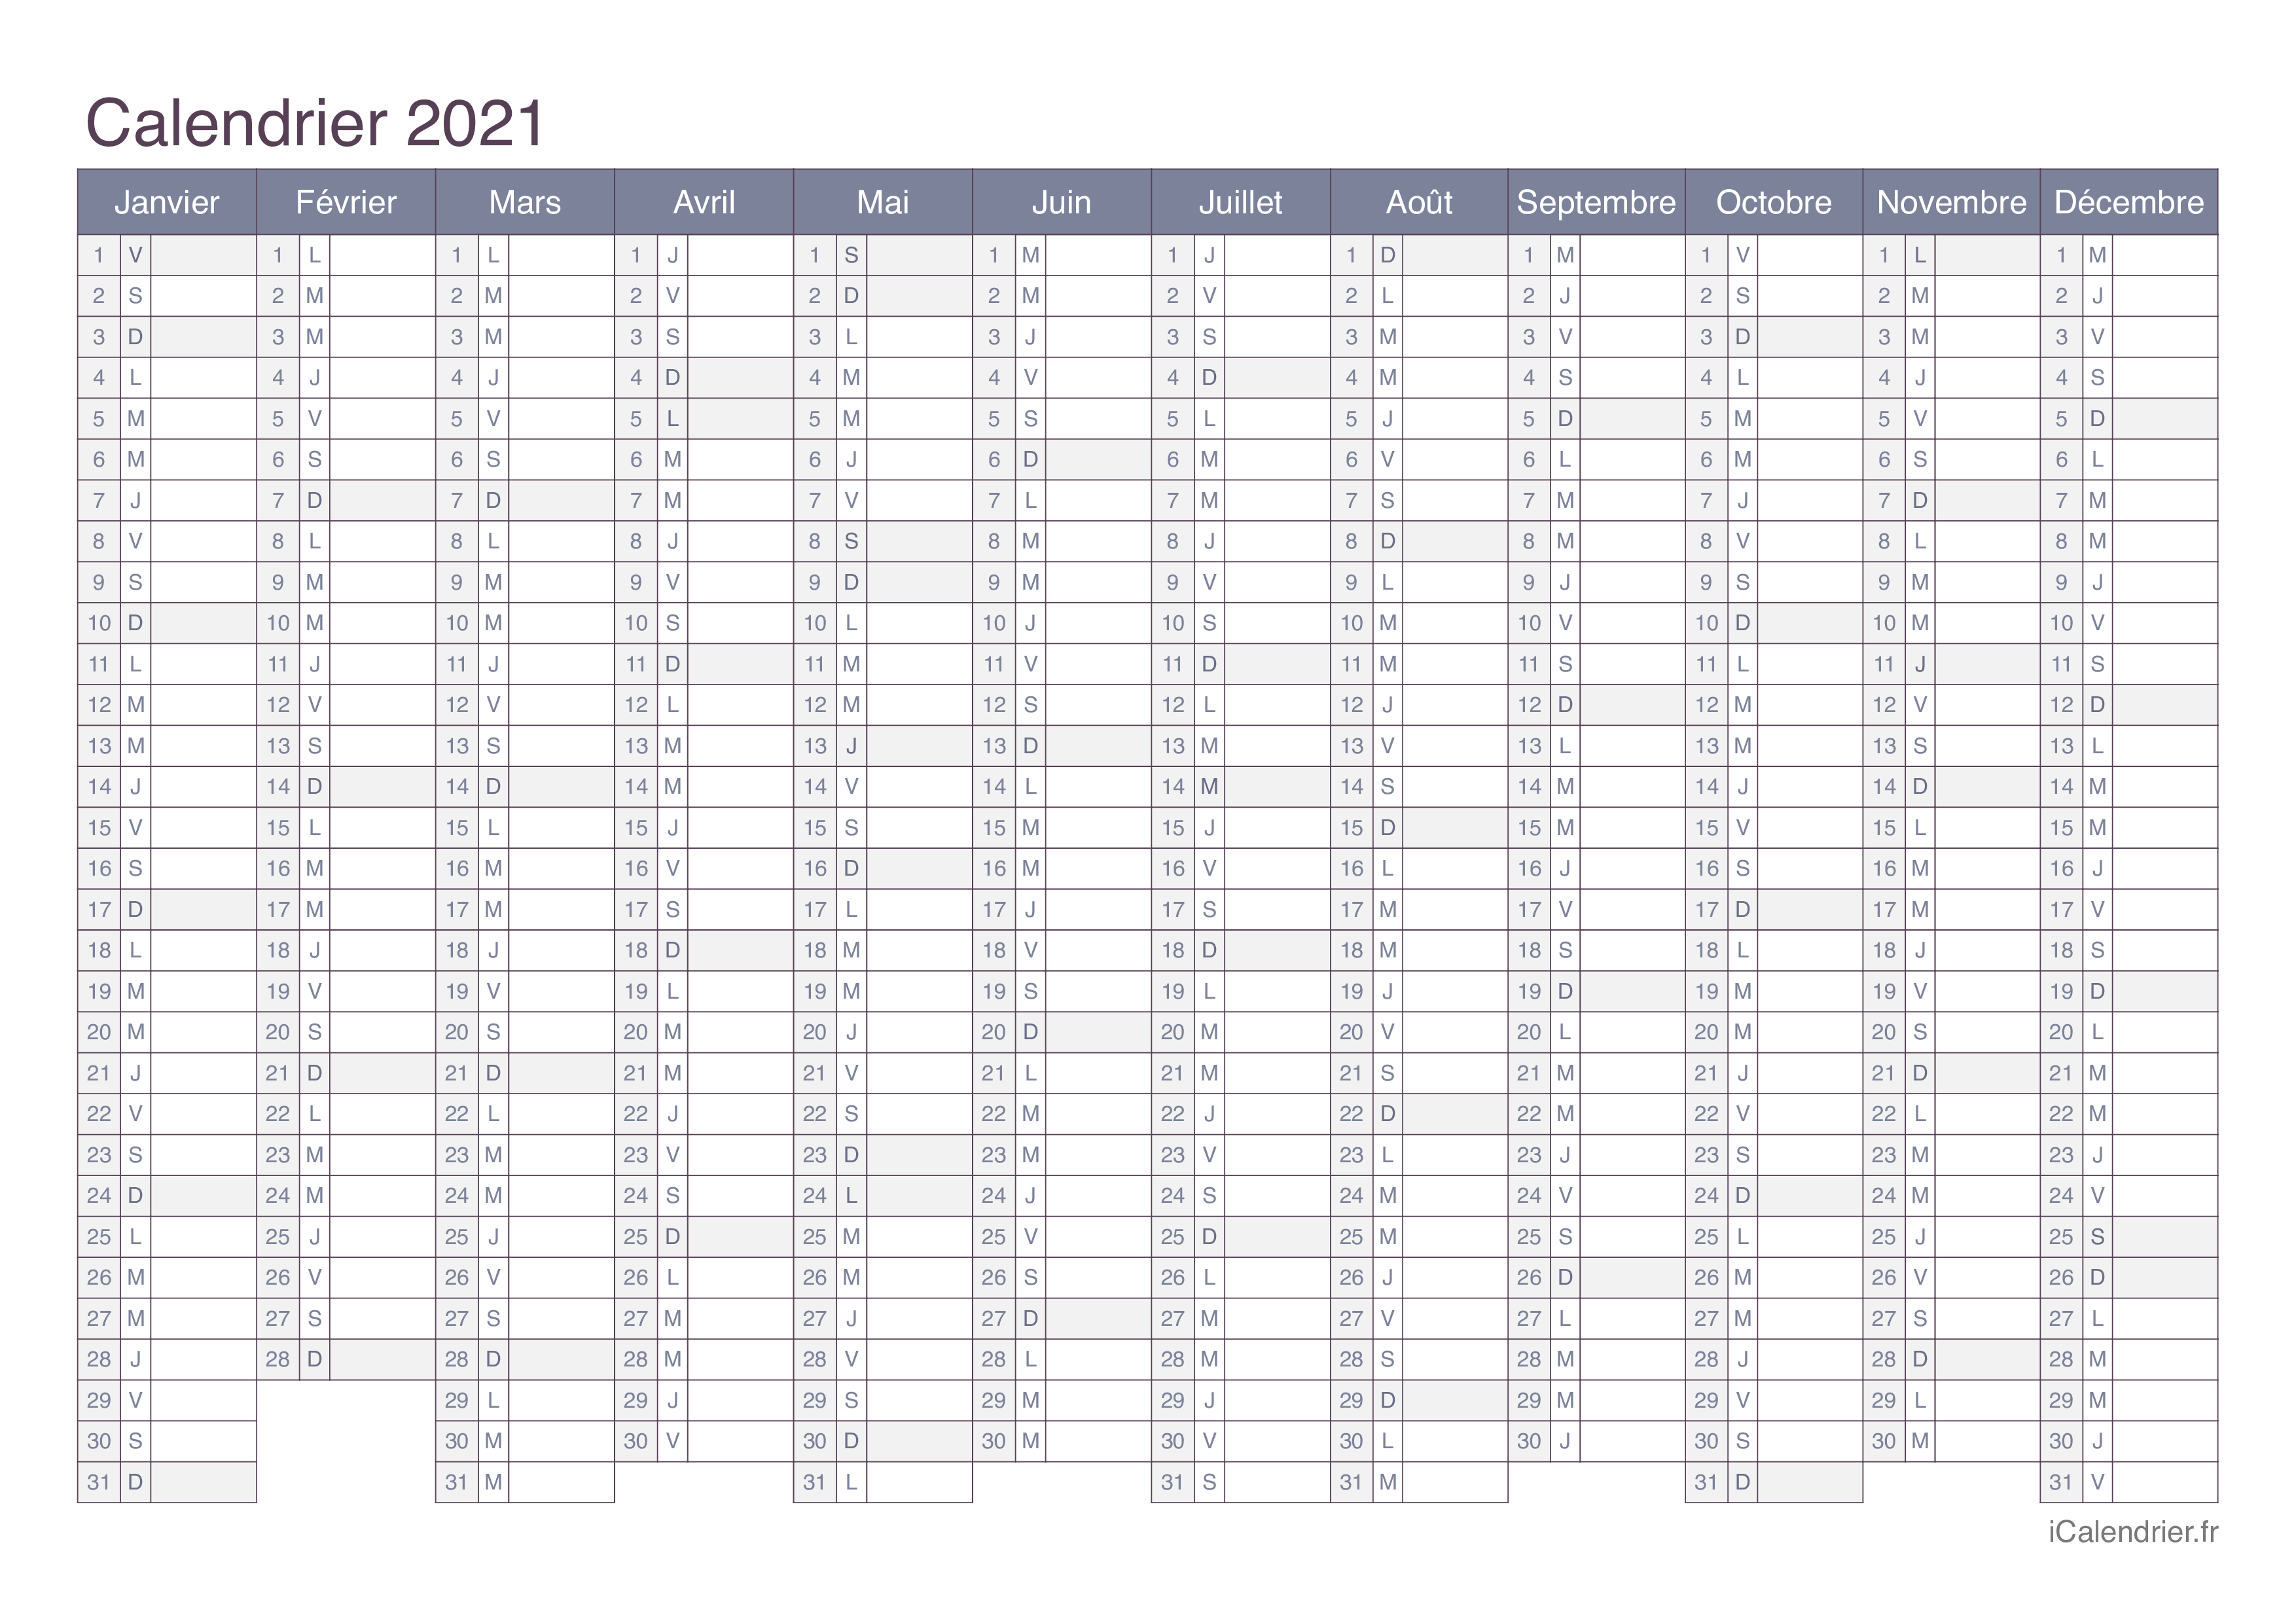 Imprimer Calendrier 2021 Calendrier 2021 à imprimer PDF et Excel   iCalendrier